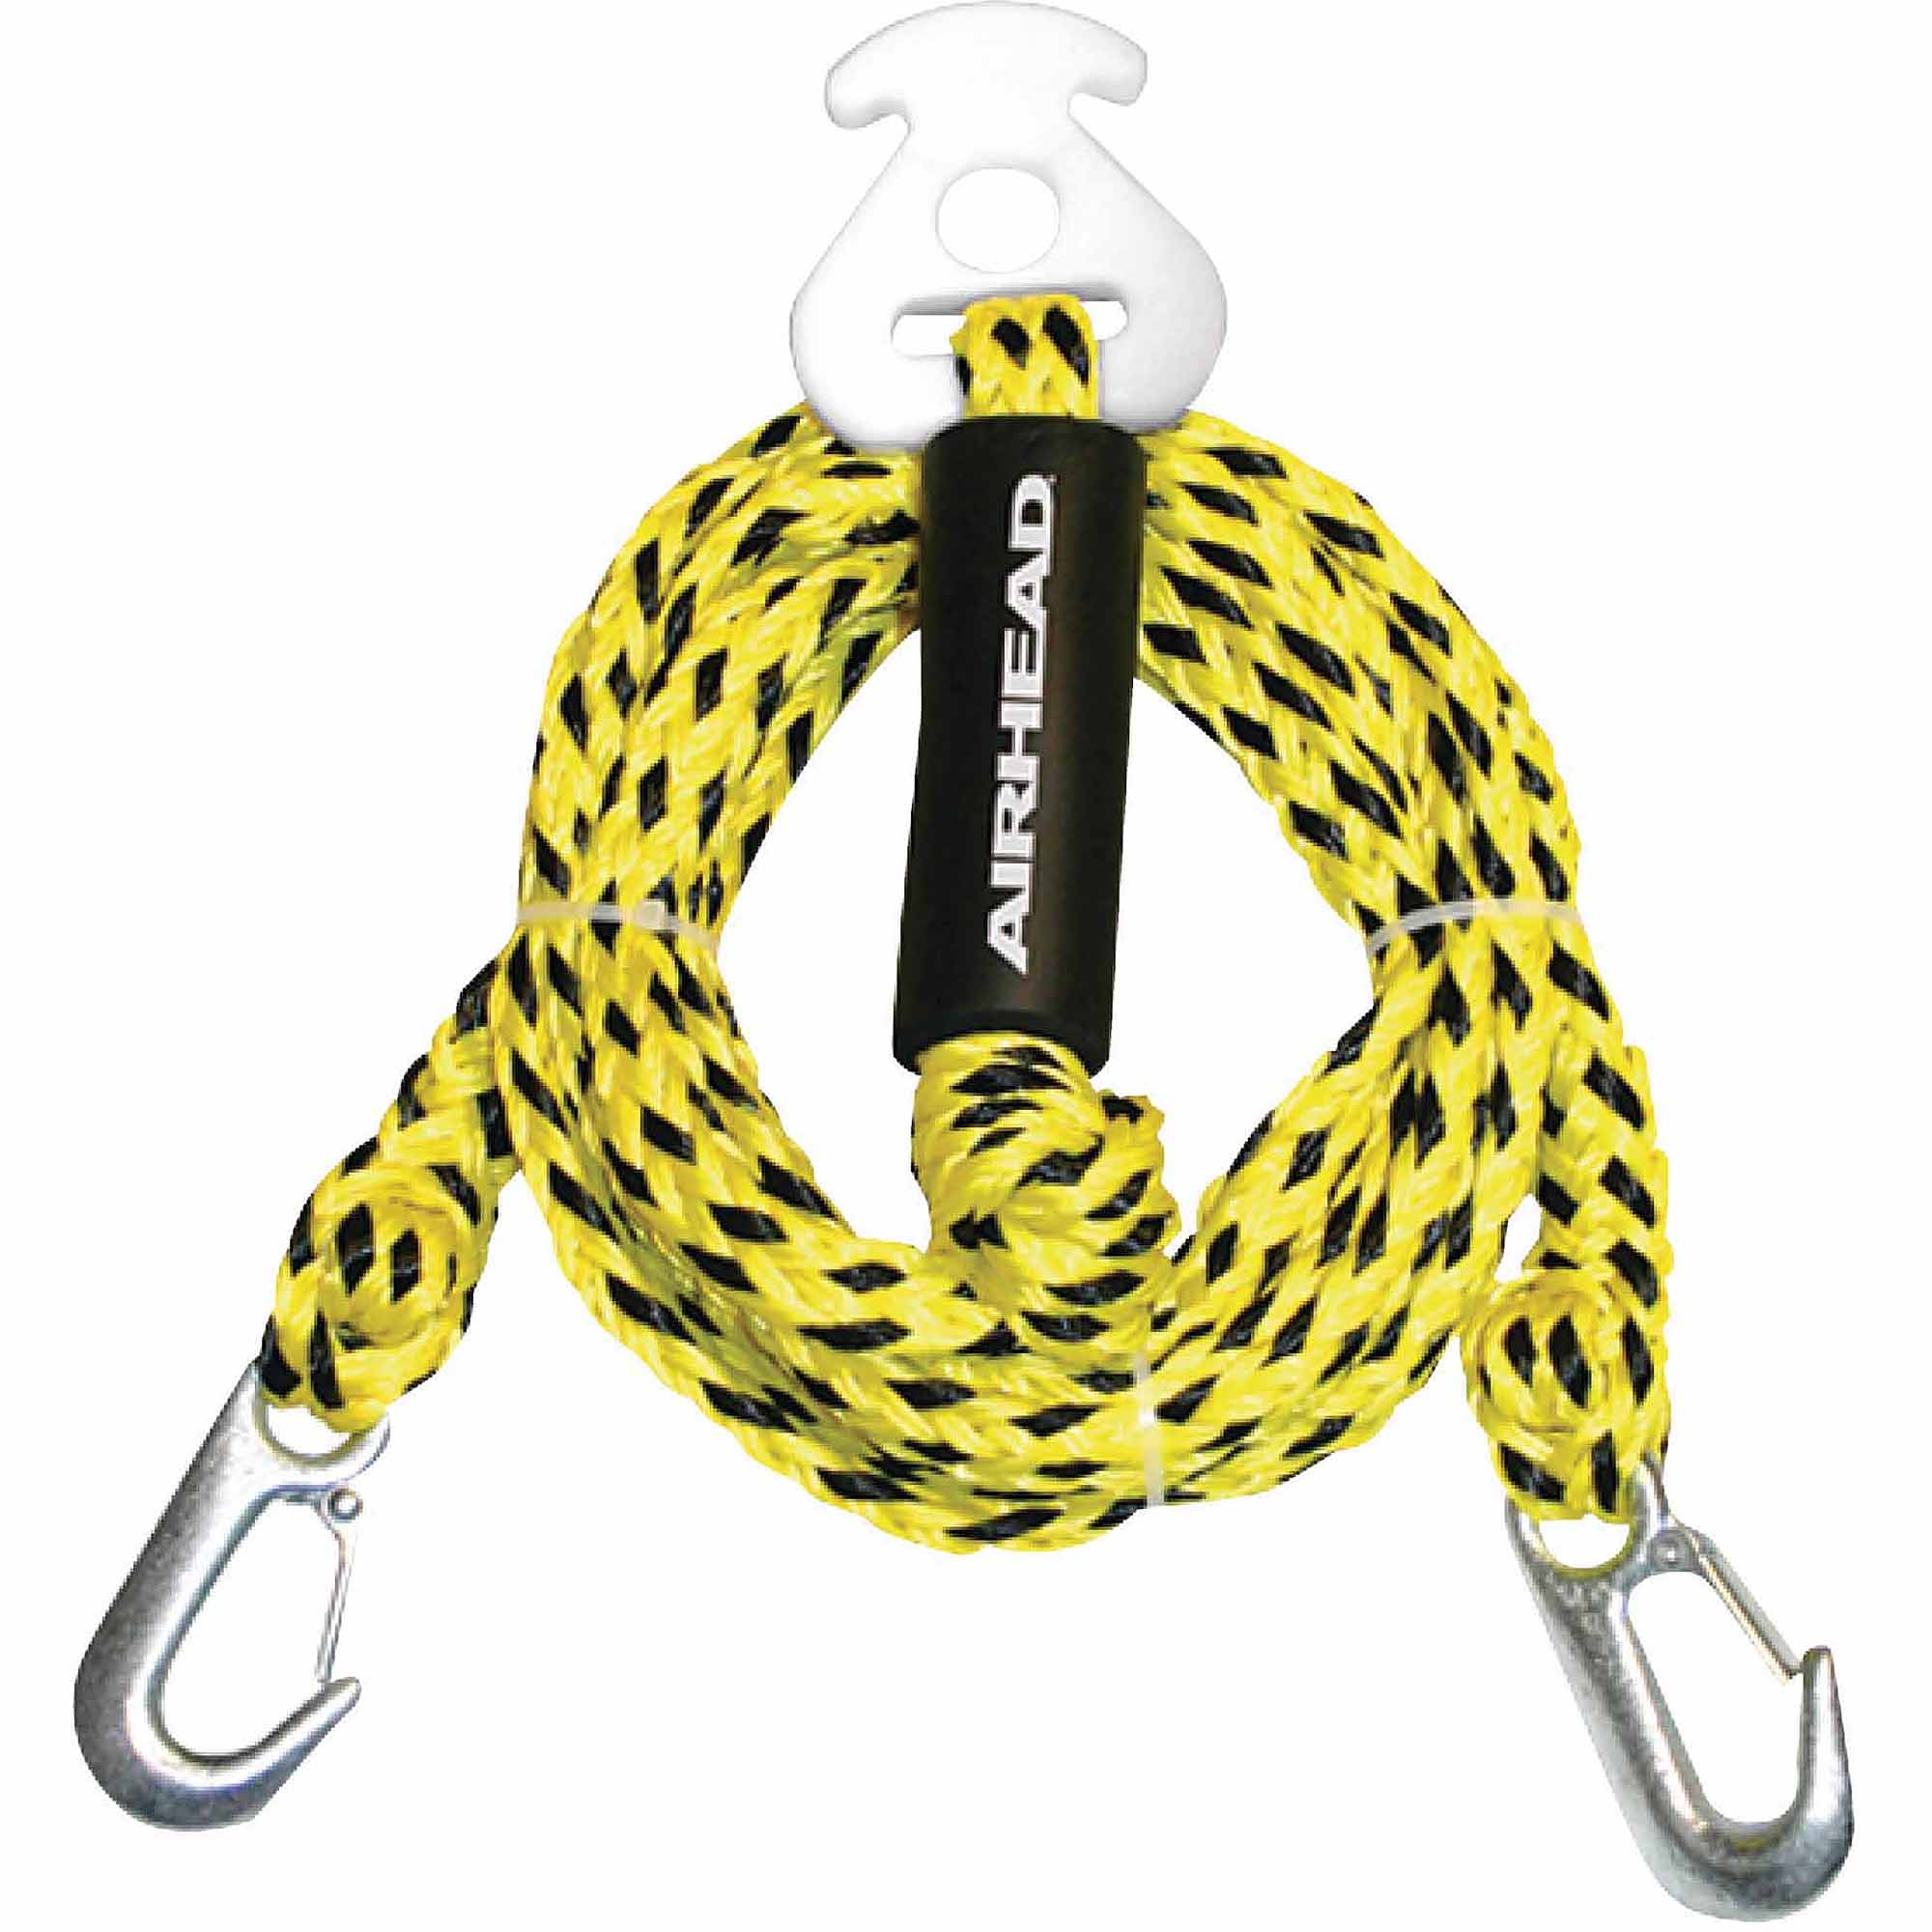 Airhead Heavy Duty Tow Harness 16' For Up to 4 Riders